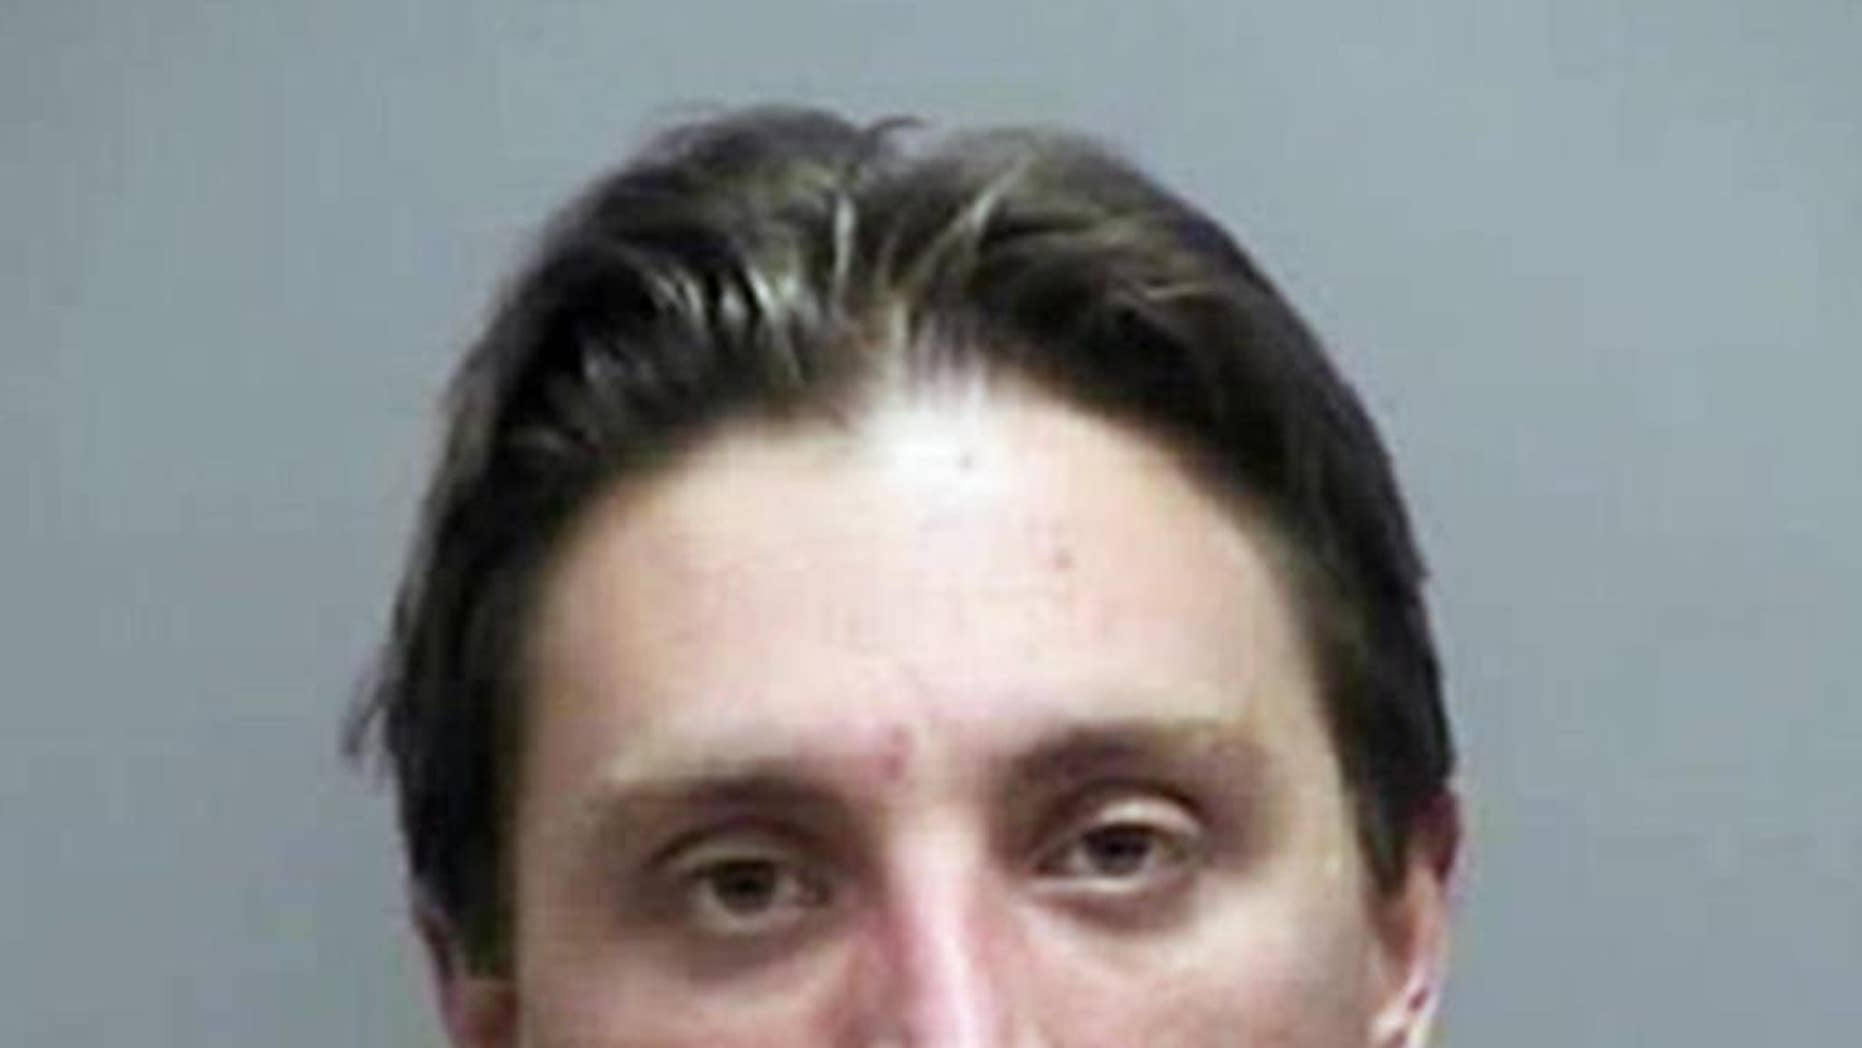 FILE - This undated file photo provided by the Rock County Sheriff's Office in Janesville, Wis., shows Joseph Jakubowski.  The Rock County Sheriff's Office says Jakubowski was captured around 6 a.m. Friday, April 14, 2017, near Readstown, Wis. The sheriff's office said in a statement that he was captured without incident.  (Rock County Sheriff's Office via AP, File)